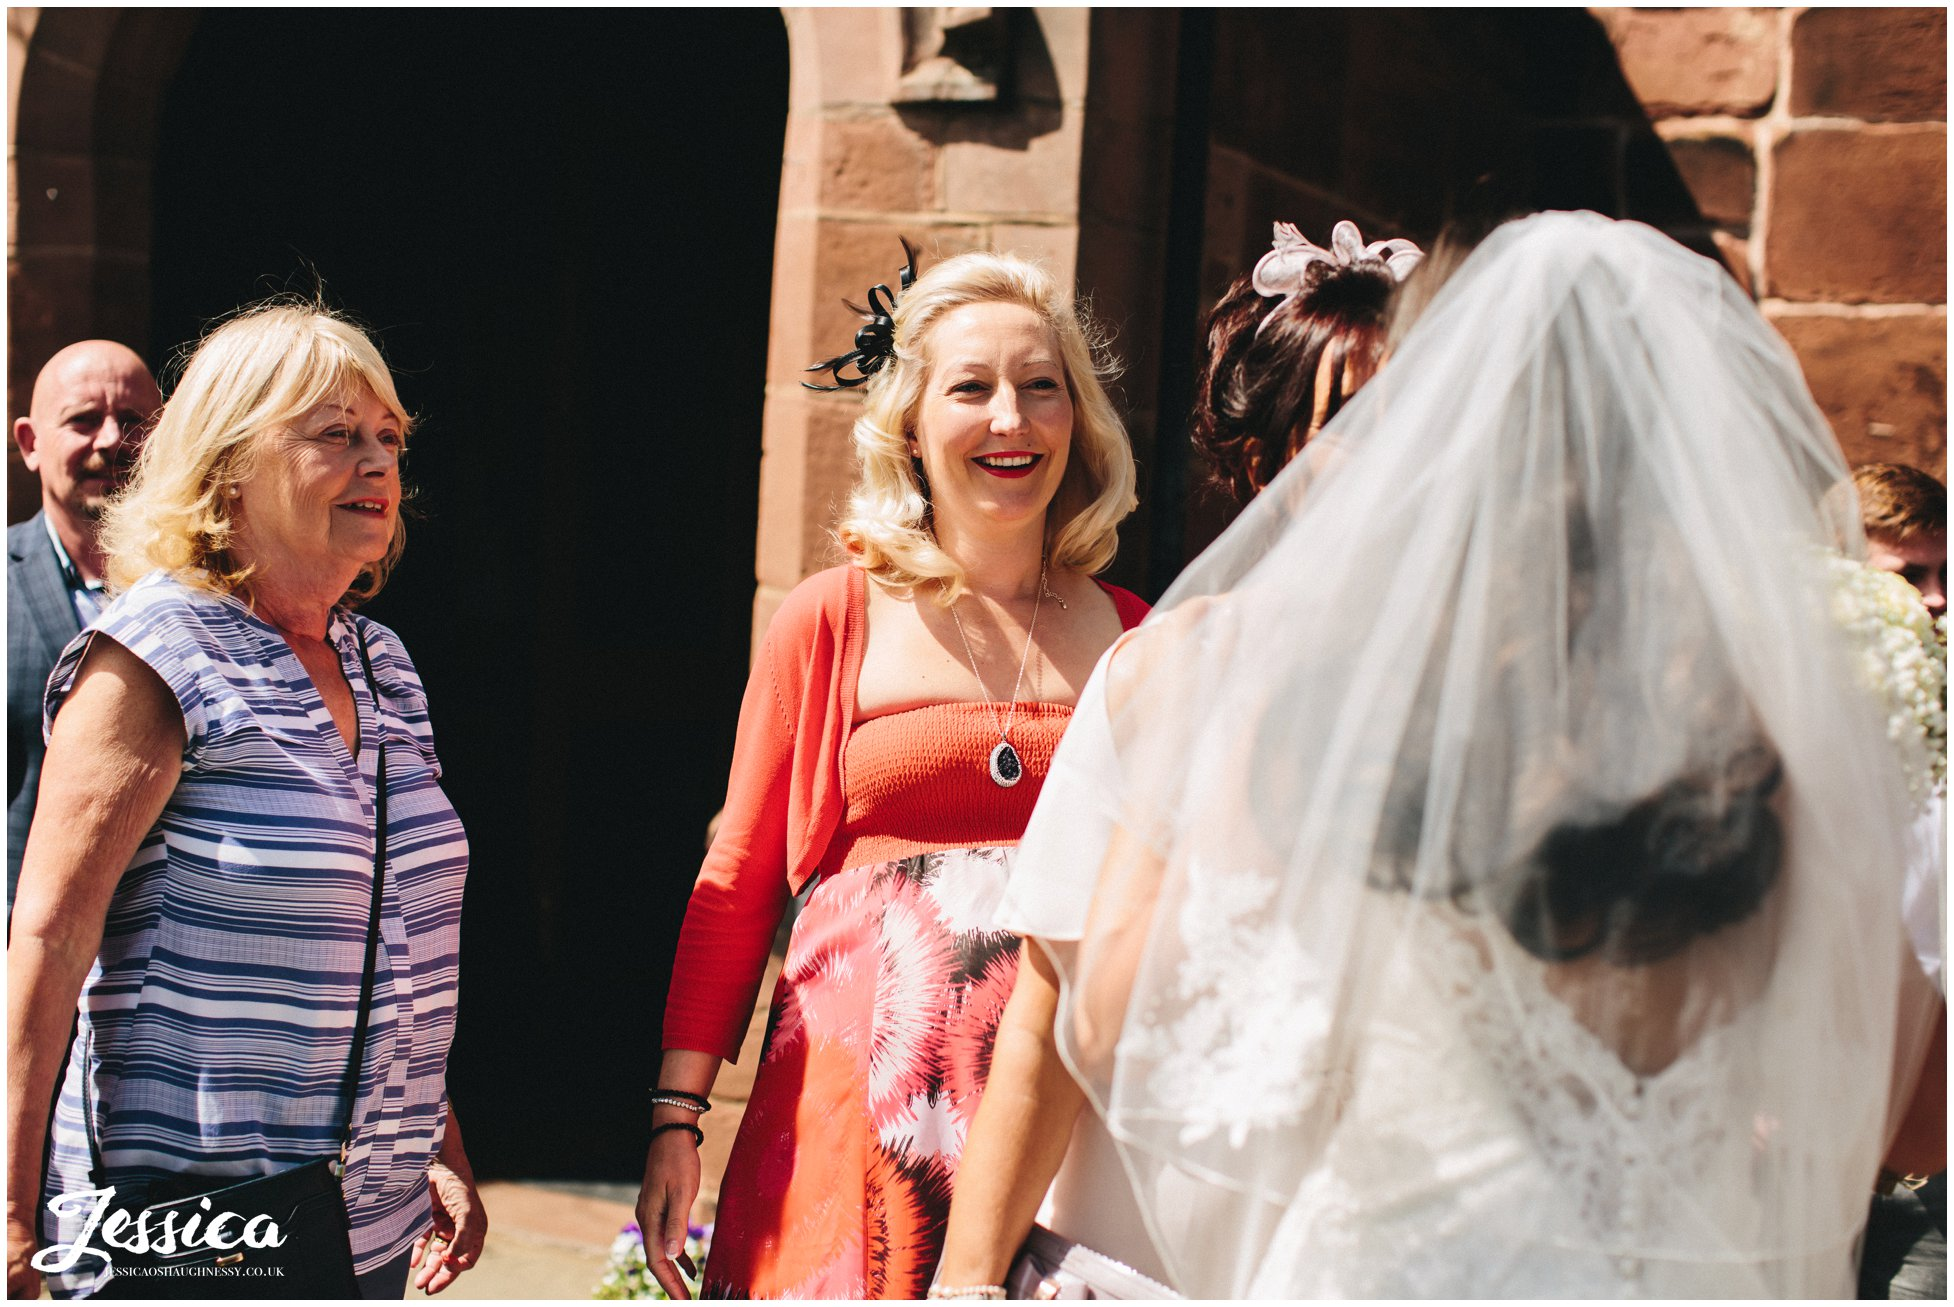 guests celebrate the new marriage